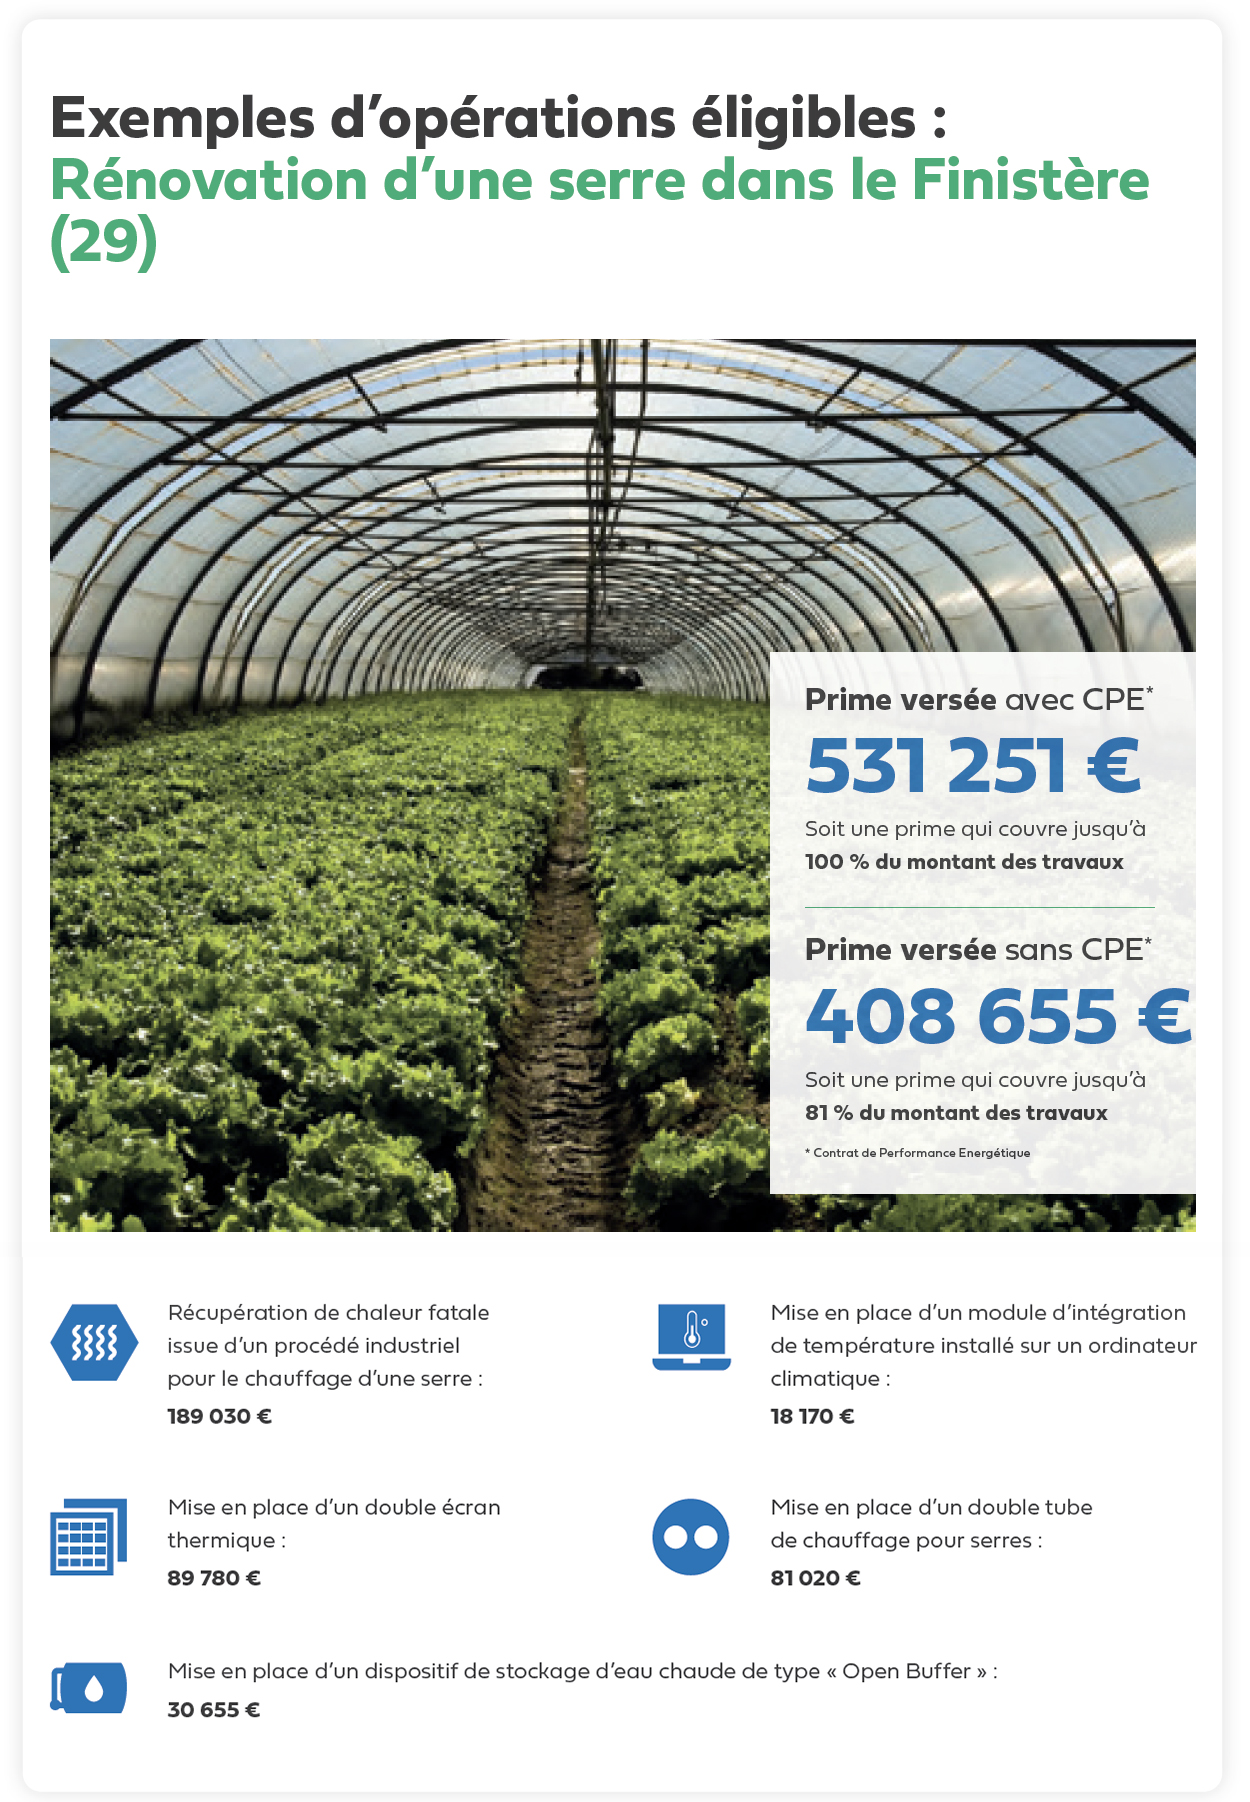 exemple-operation-renovation-cp-agriculture